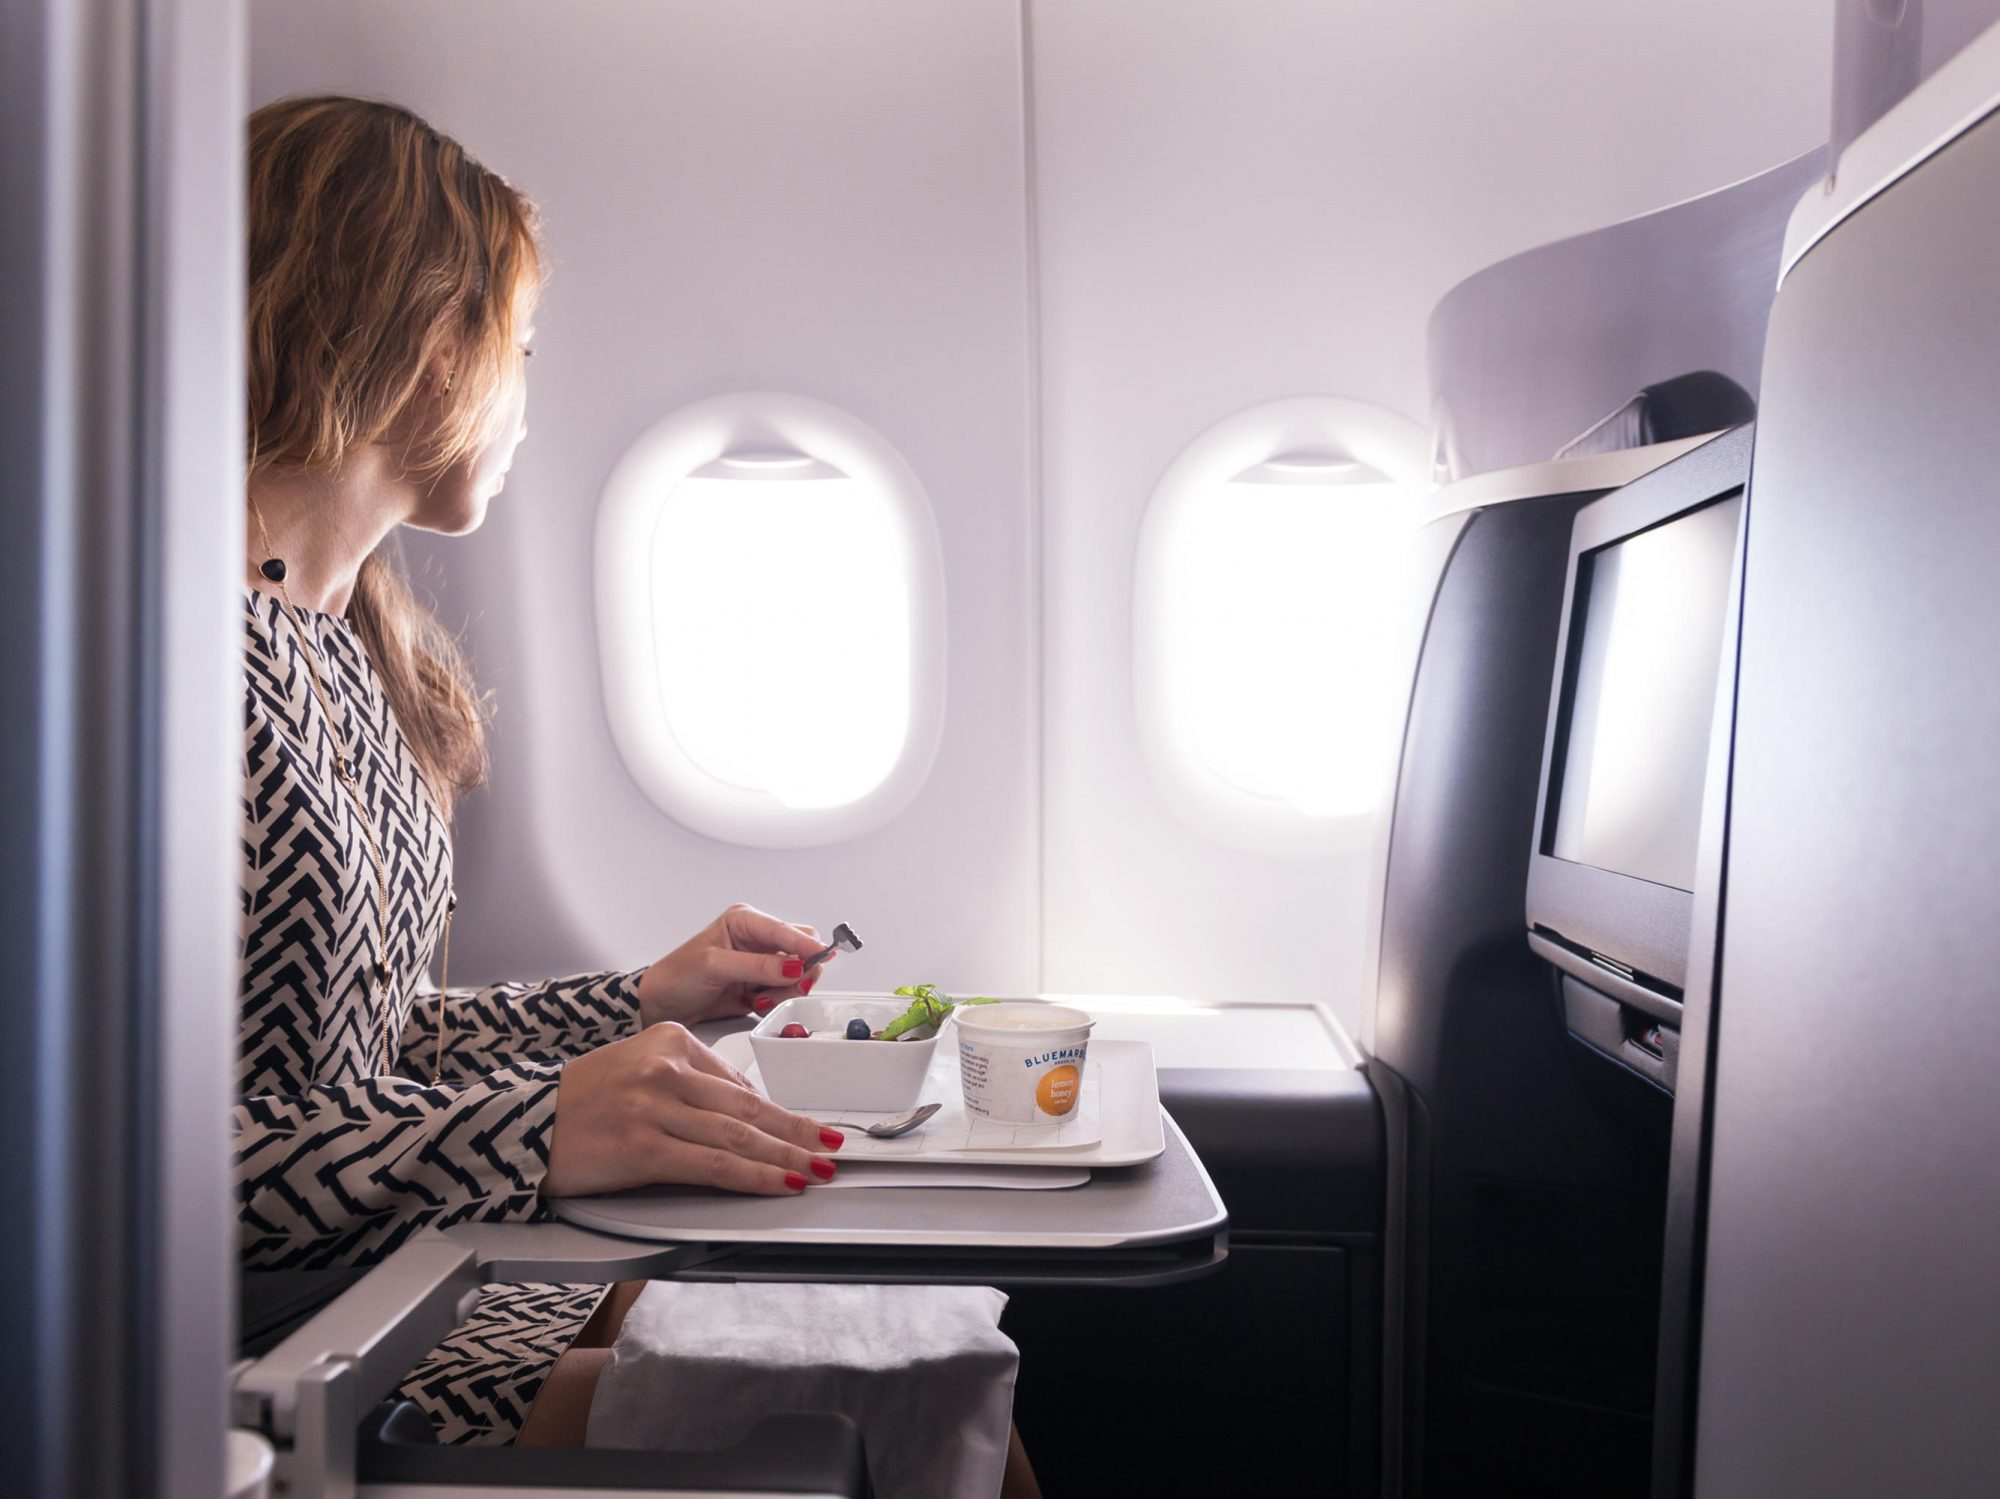 Here's How to Get the Healthiest Airline Meal When Traveling 1808w-Jetblue-mint-seat